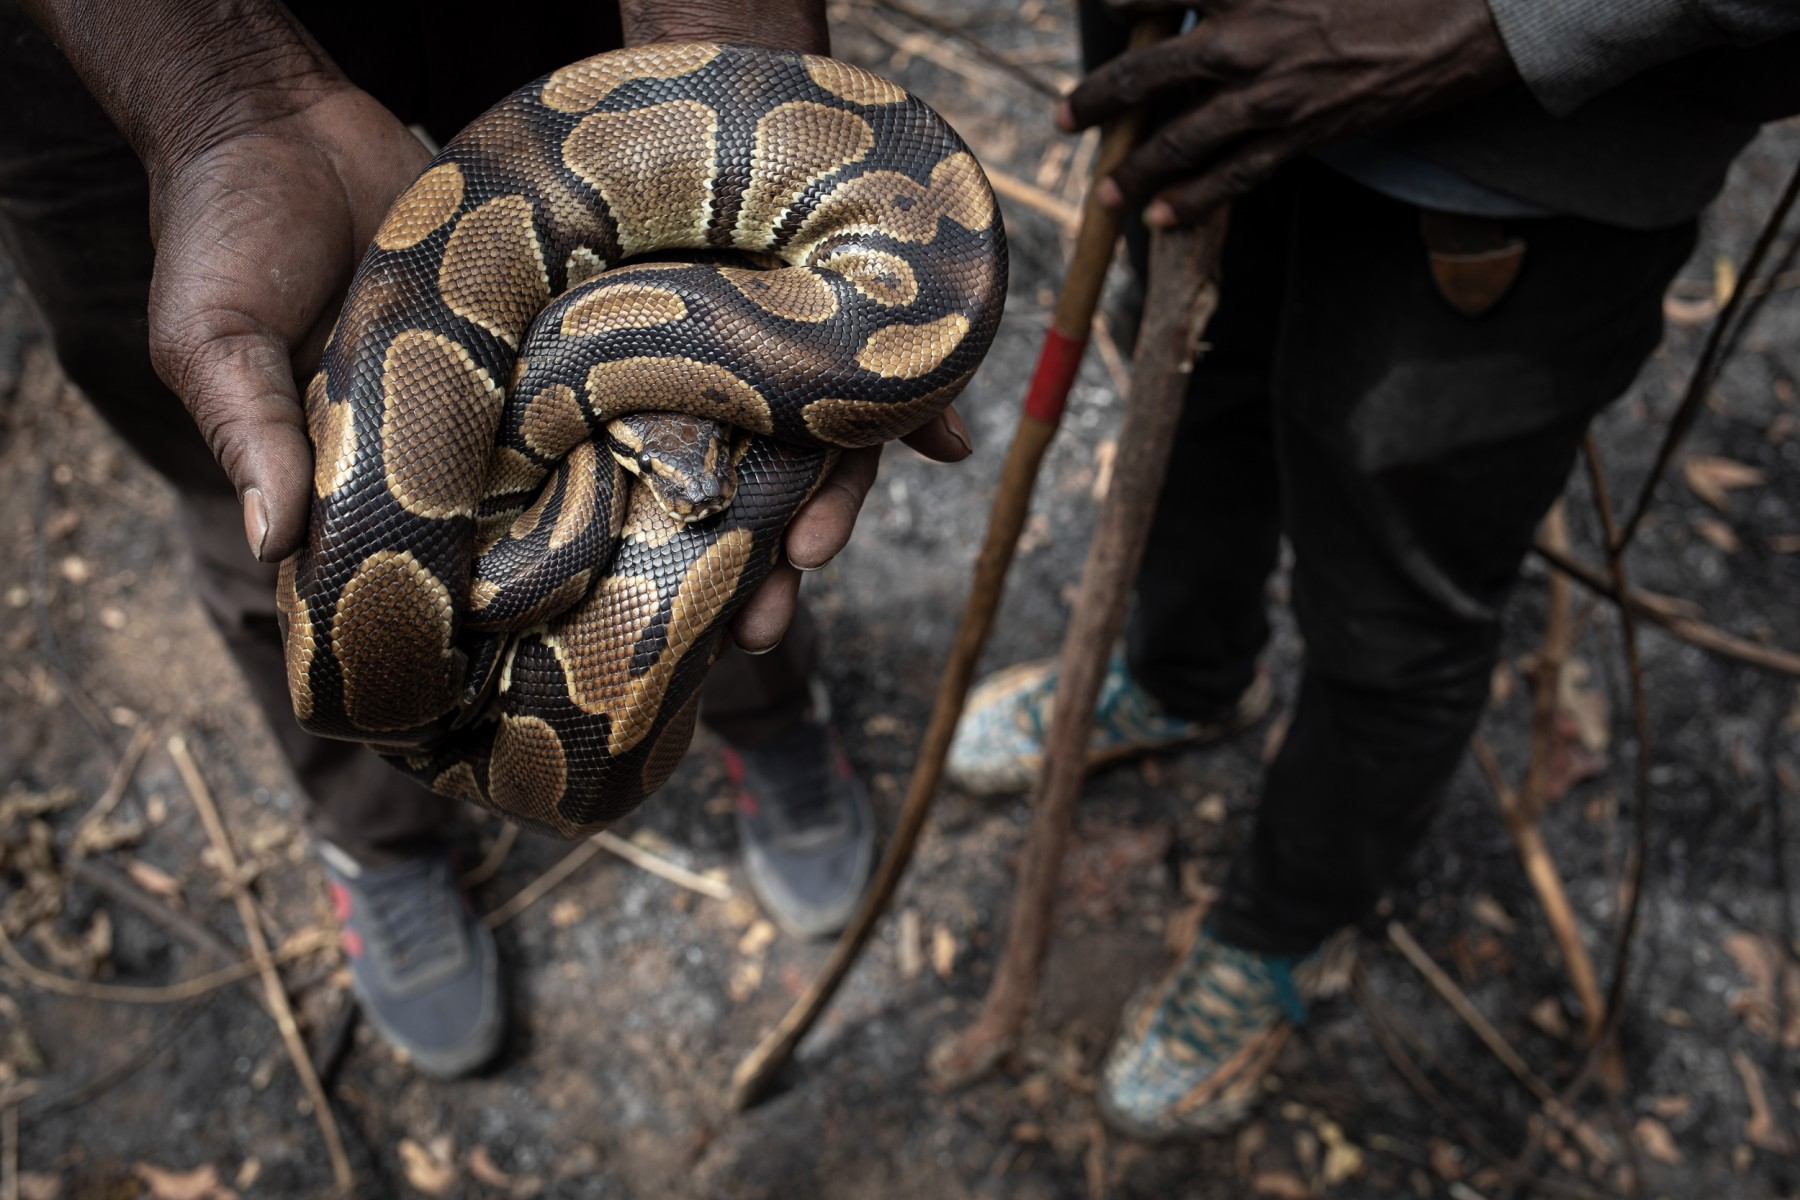 Ball python held by hunter - photo by Aaron Gekoski for World Animal Protection